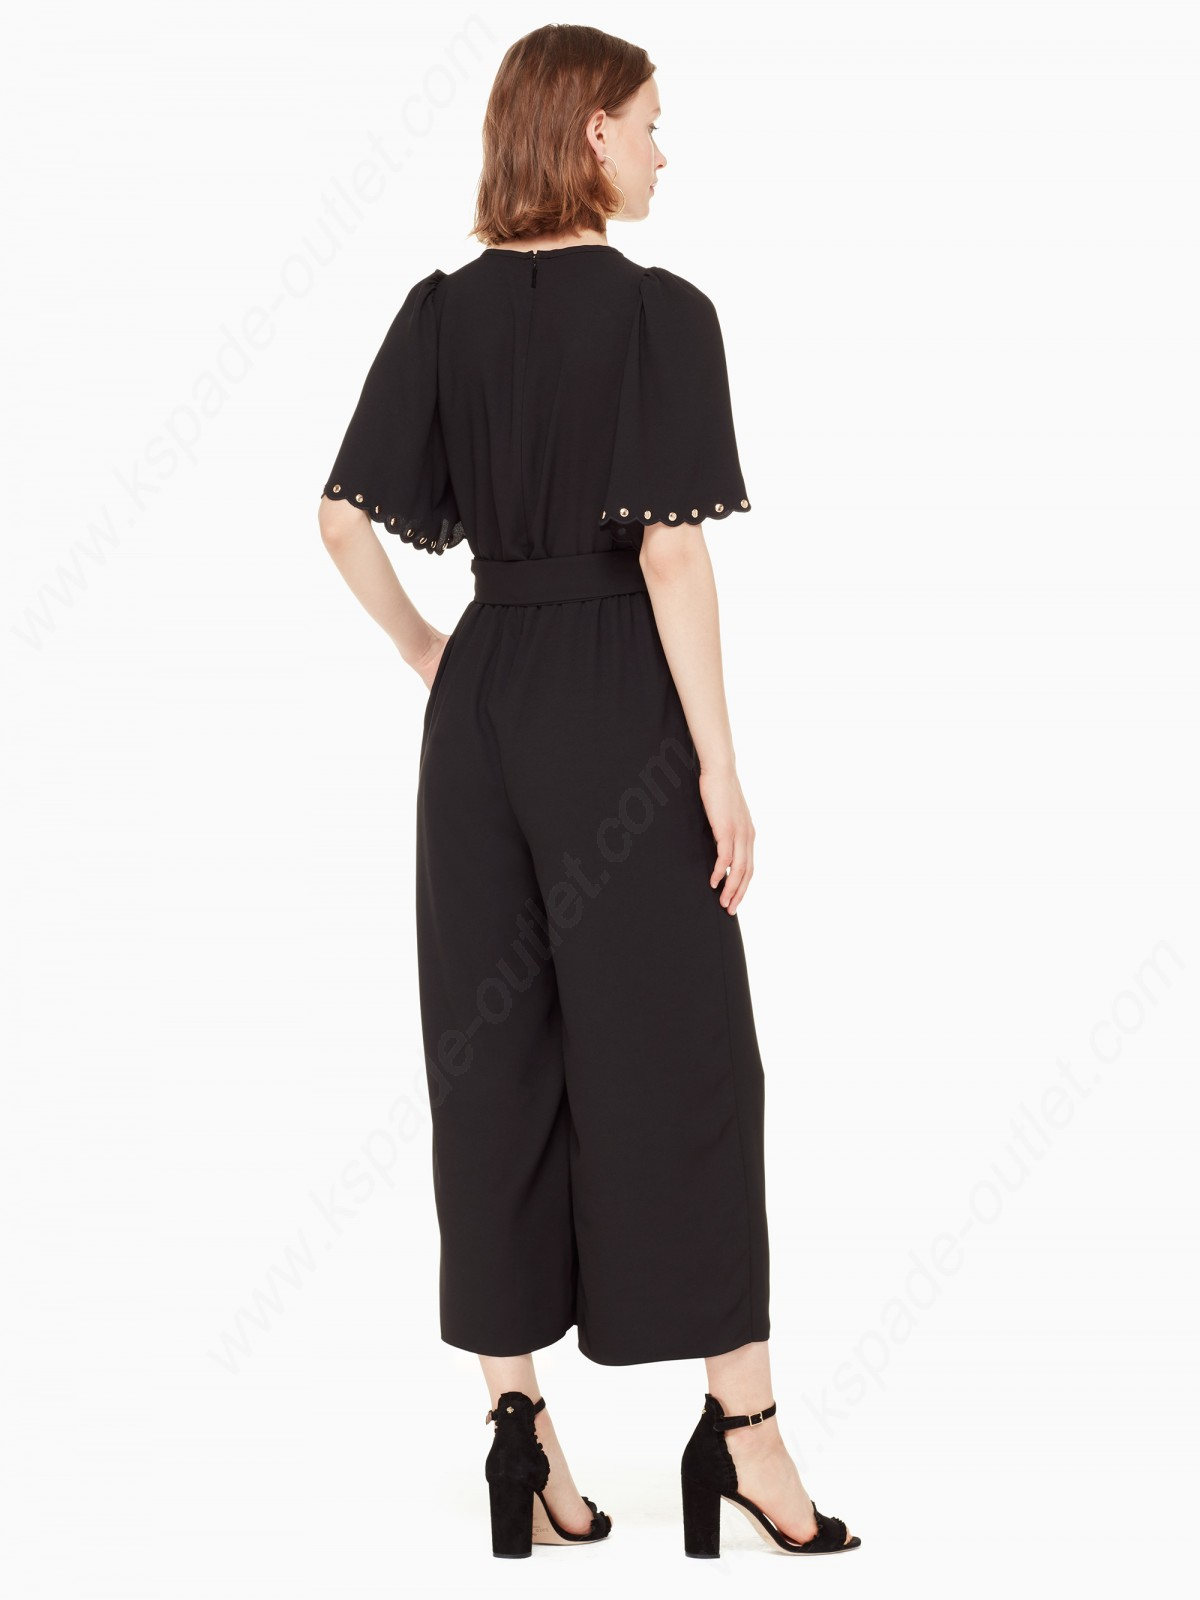 Kate Spade Womens Clothing Flutter Sleeve Jumpsuit - -2